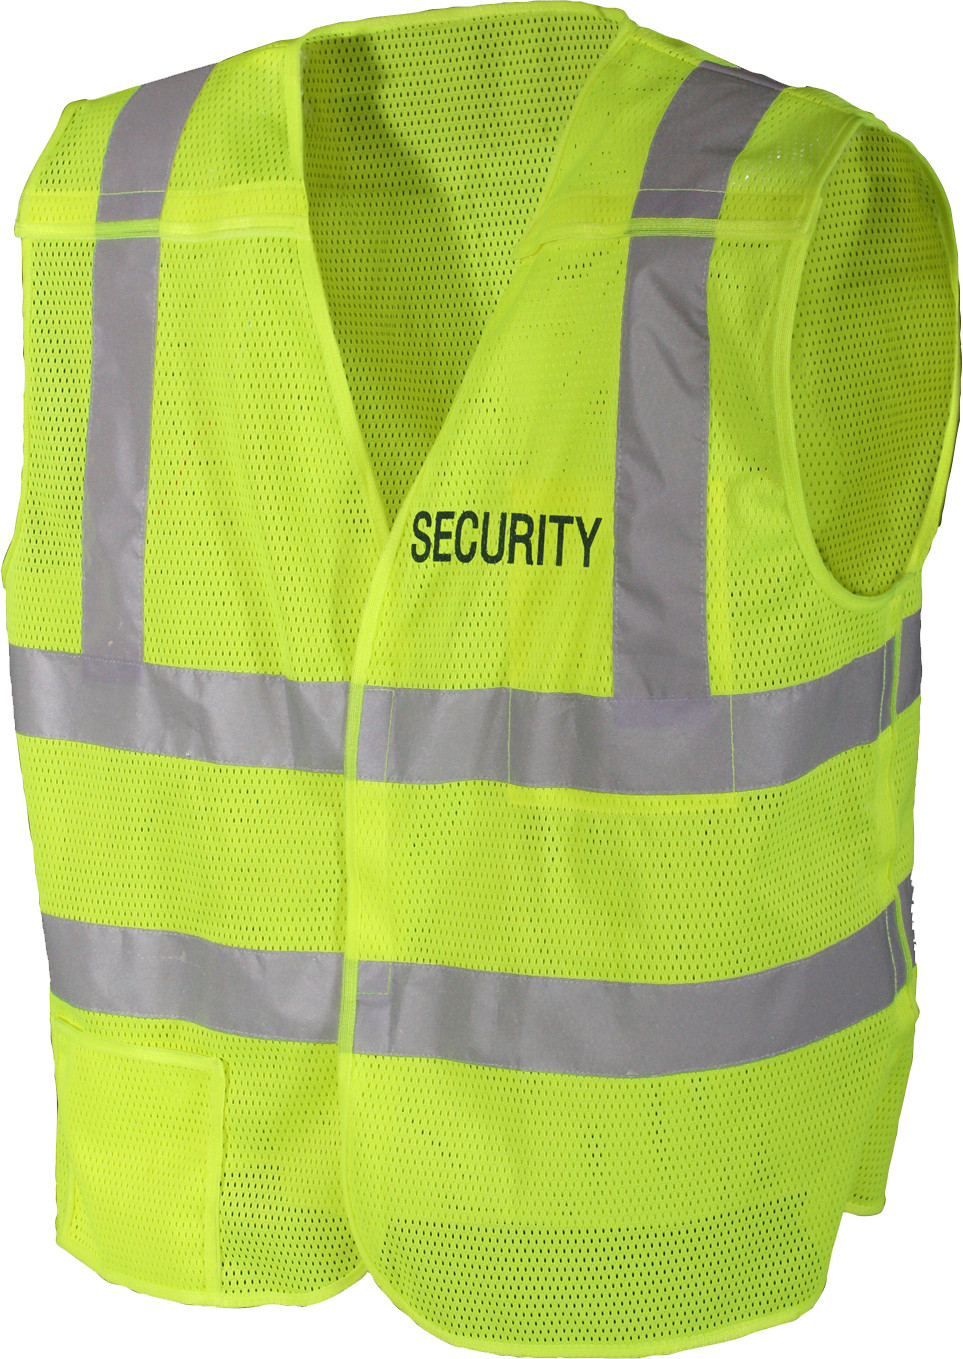 Safety Green Hi-Visibility 5 Point Tactical Breakaway Protective SECURITY Safety  Vest f175a03c174